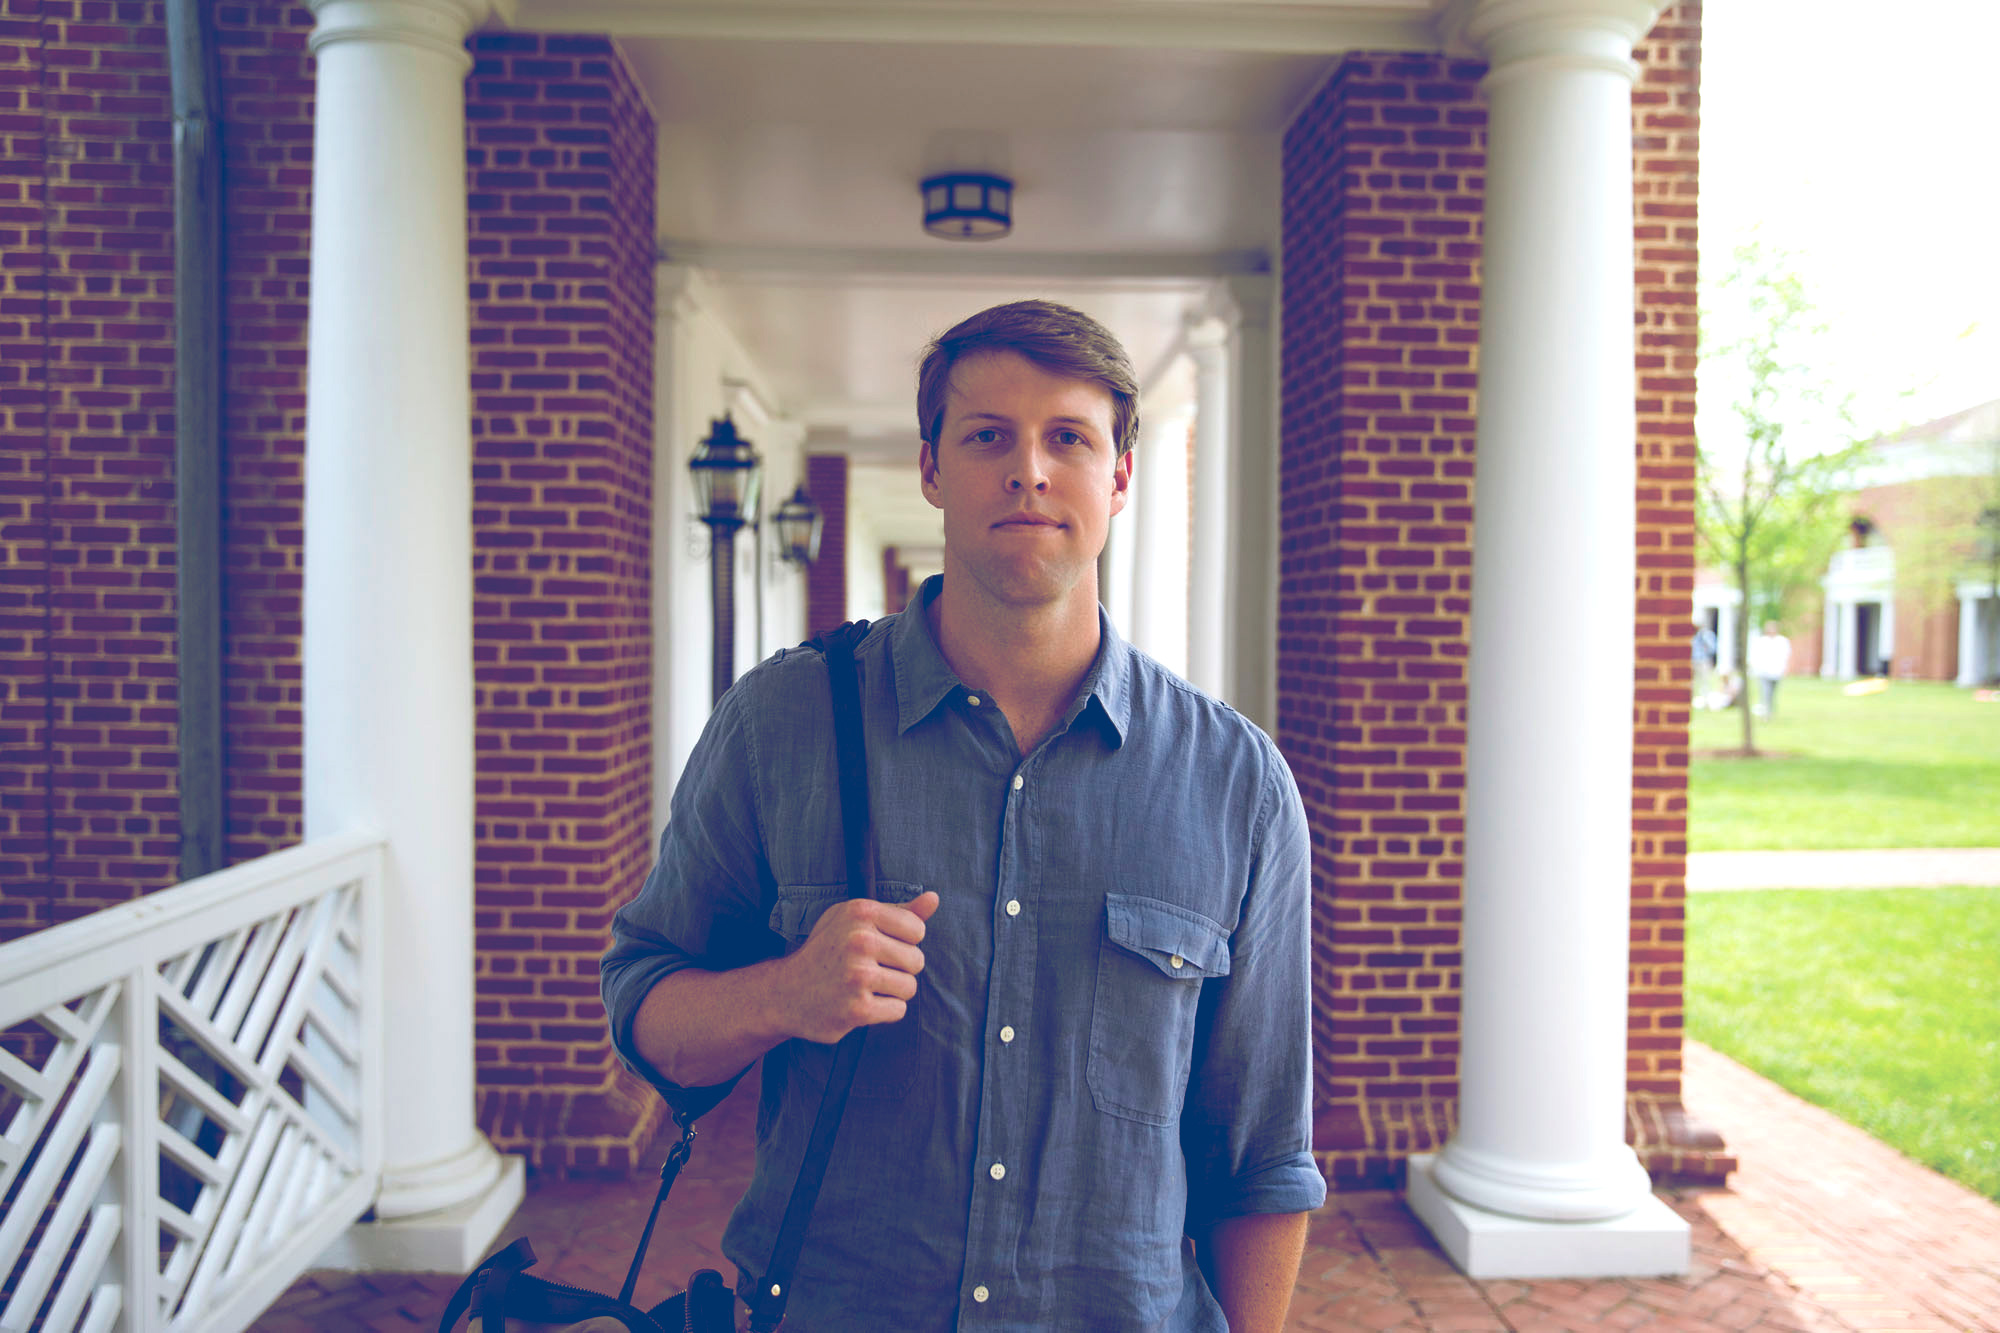 Tom Santi found his next career opportunity after professional football by returning to UVA and the Darden School. (Photo by Dan Addison)